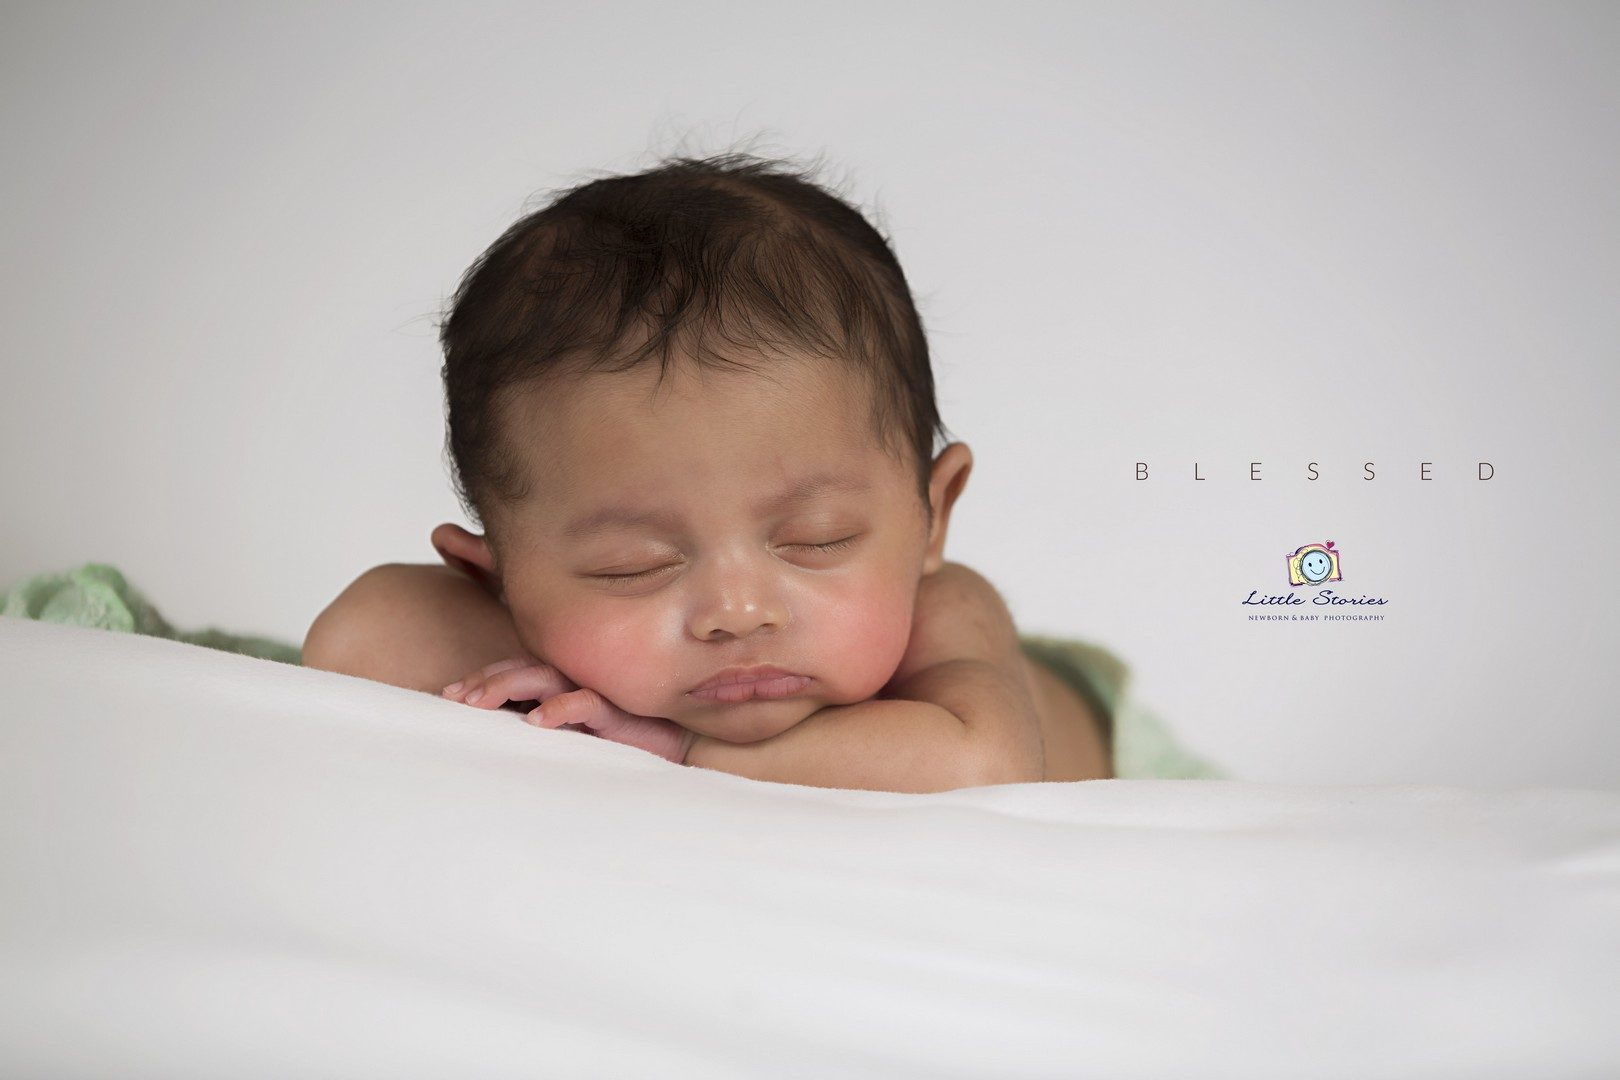 Pure Newborn Baby Shoots by Little Stories